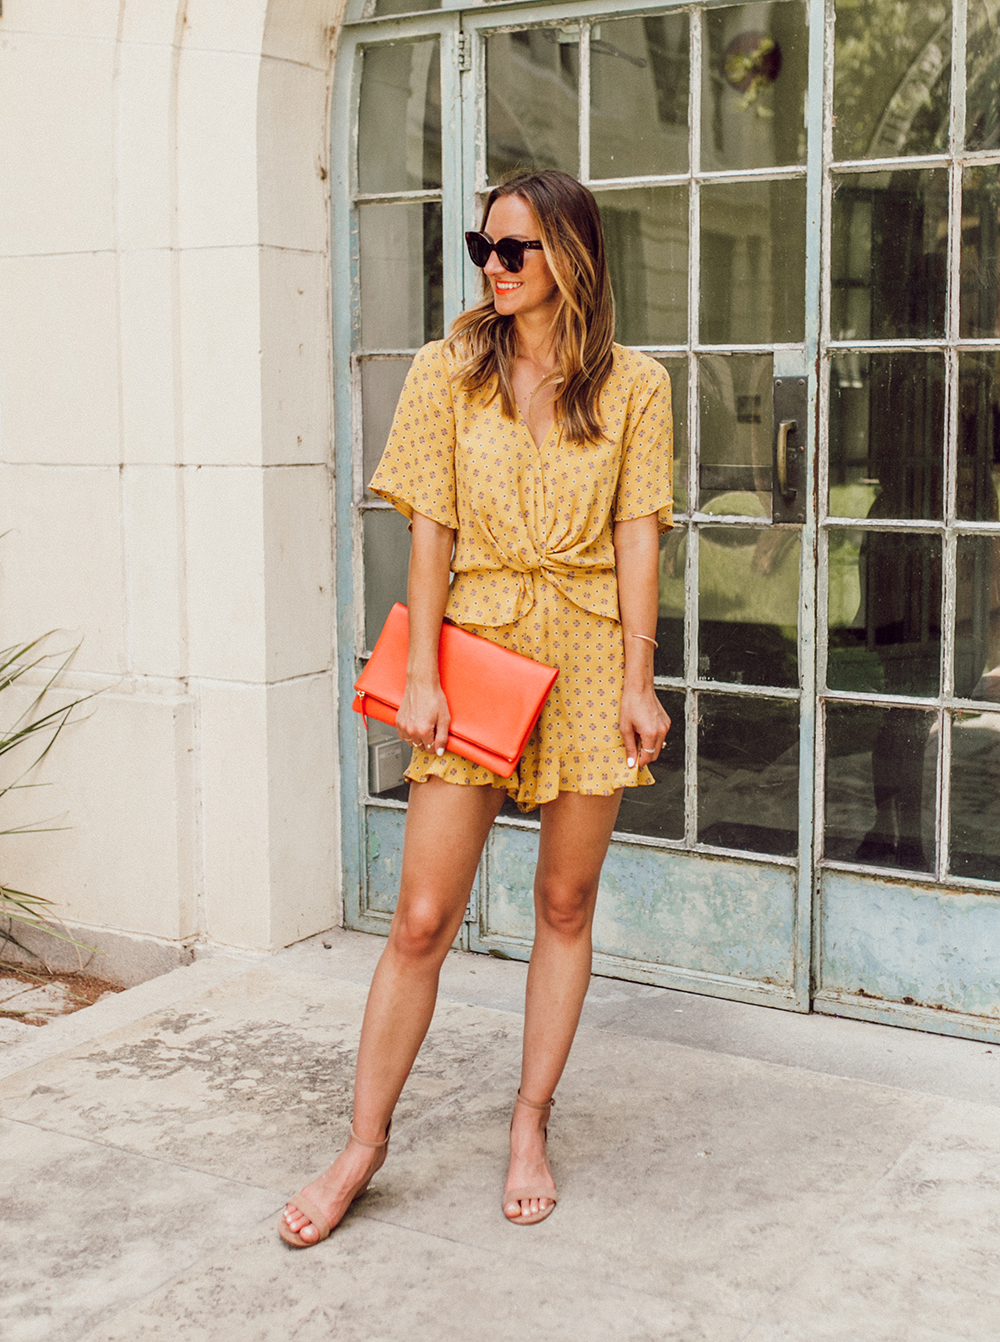 livvyland-blog-olivia-watson-austin-texas-fashion-lifestyle-blogger-river-island-floral-print-yellow-knot-front-romper-summer-occasion-outfit-idea-5